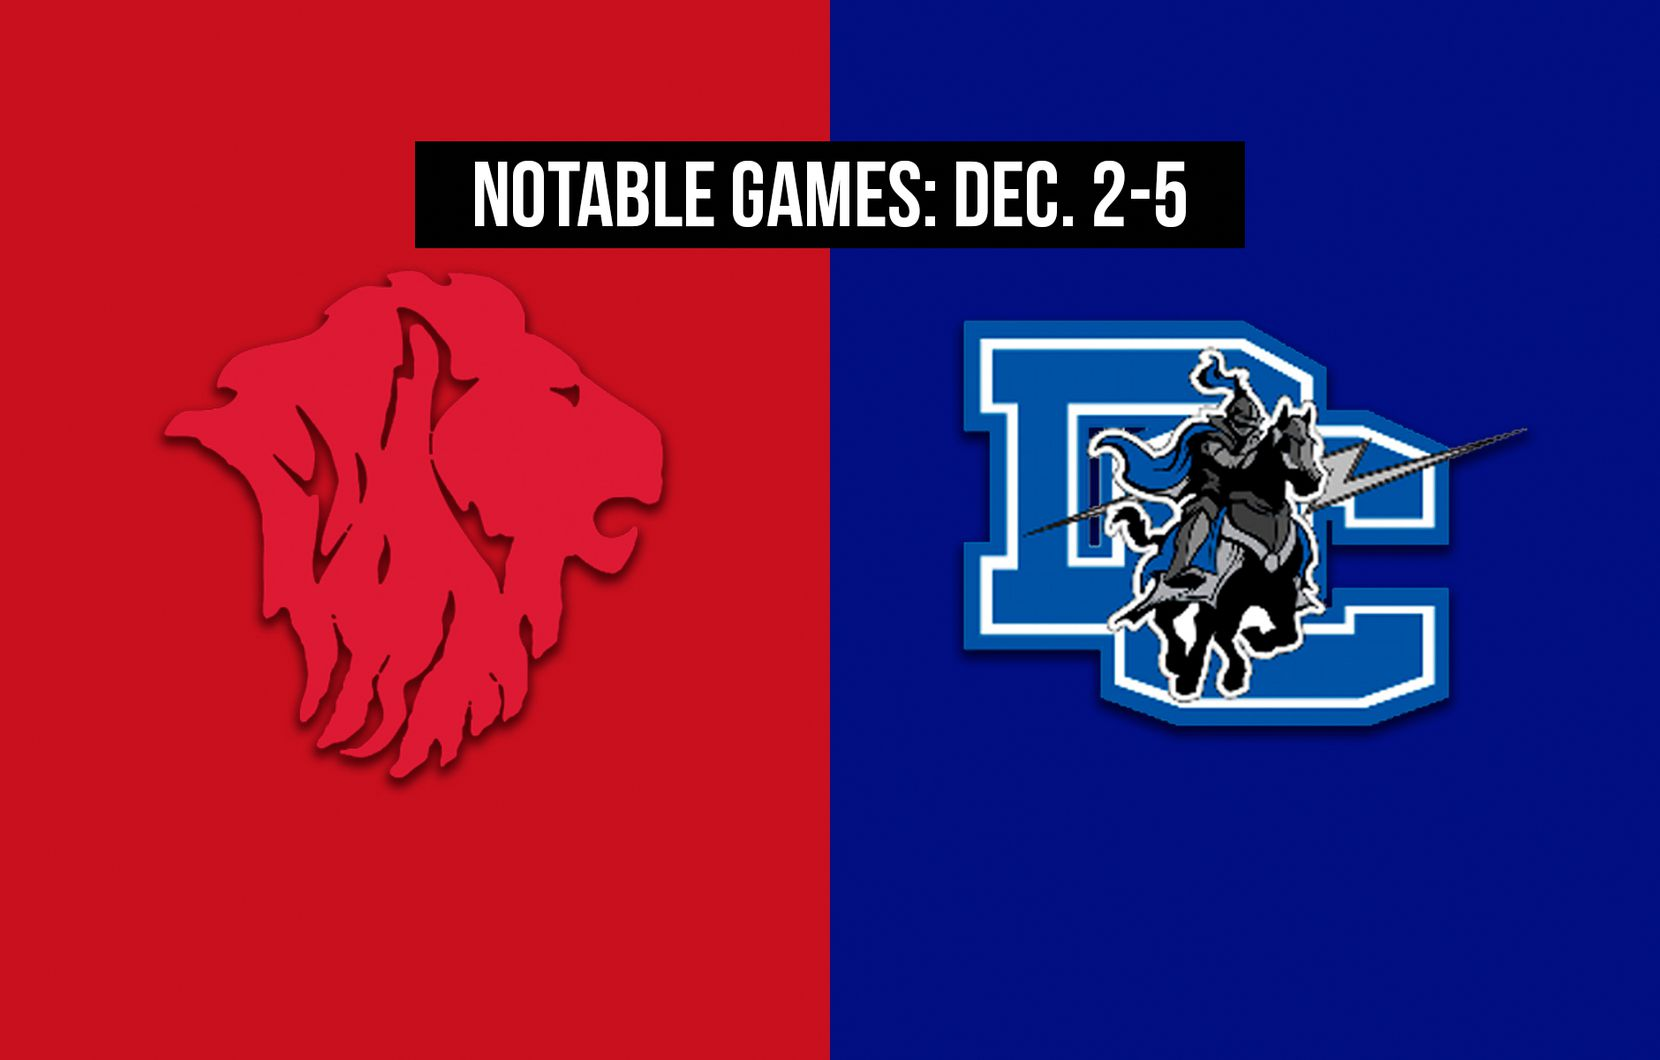 Notable games for the week of Dec. 2-5 of the 2020 season: Grapevine Faith vs. Dallas Christian.